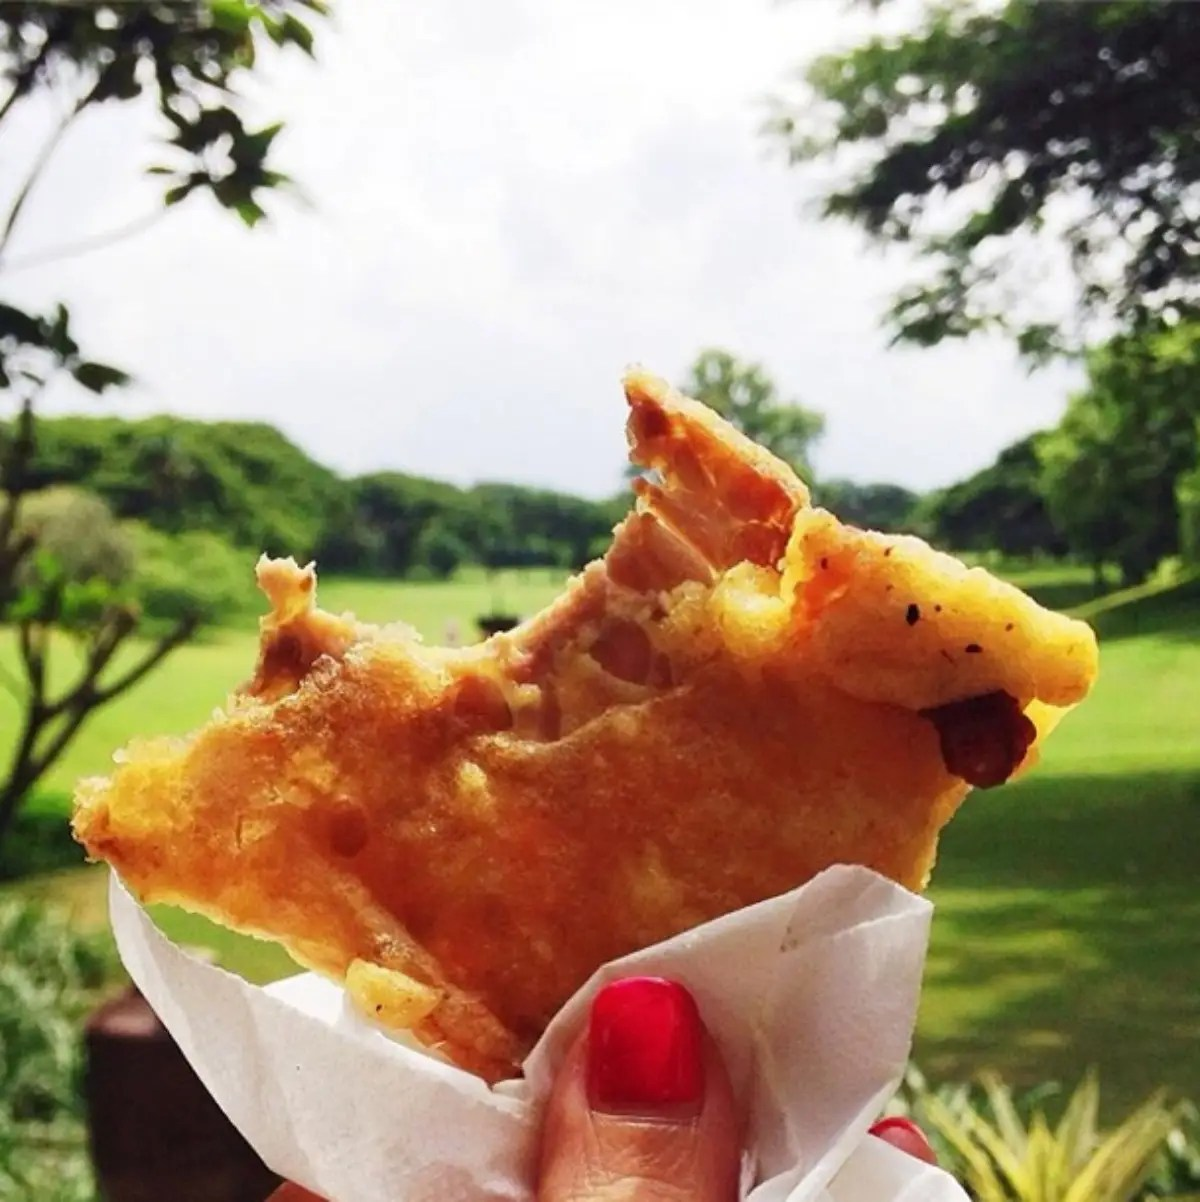 Tempeh coated in flour and turmeric then deep fried to crispiness, in Jakarta, Indonesia. I grew up having this as an after-school snack, and now tempeh remains one of my favorite food!